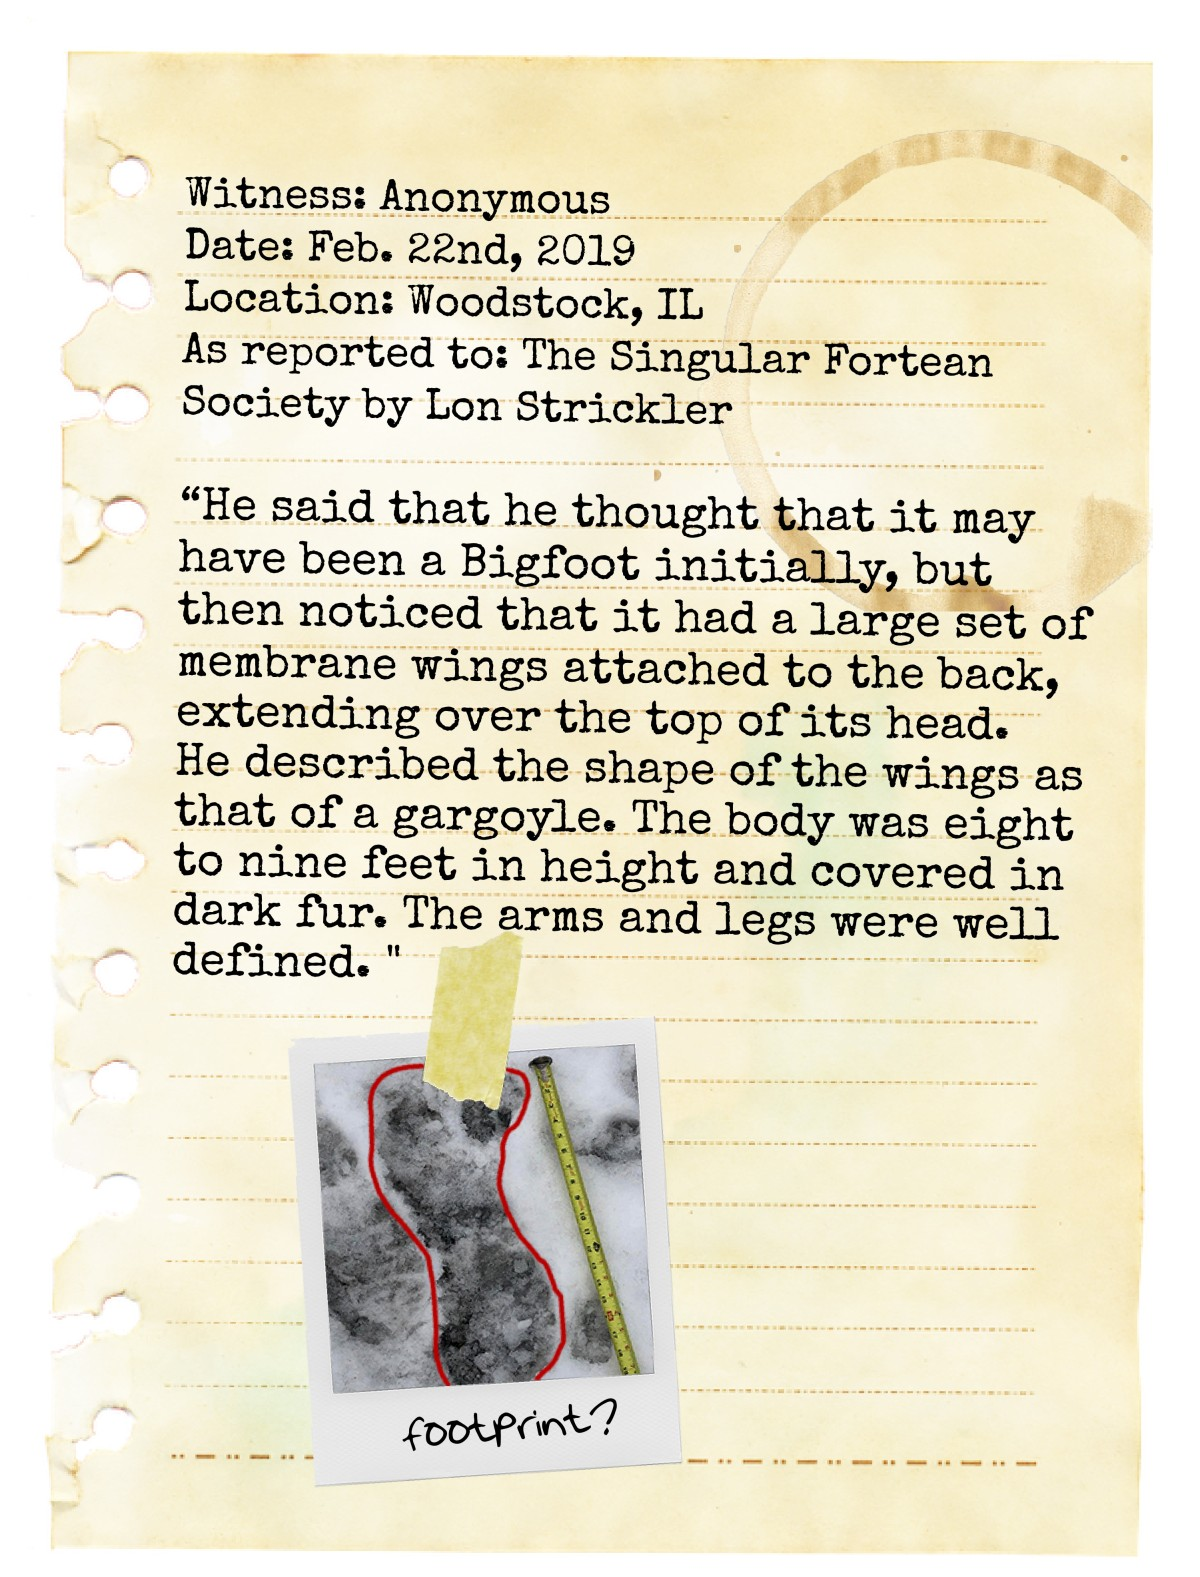 Witness statement Mothman updated